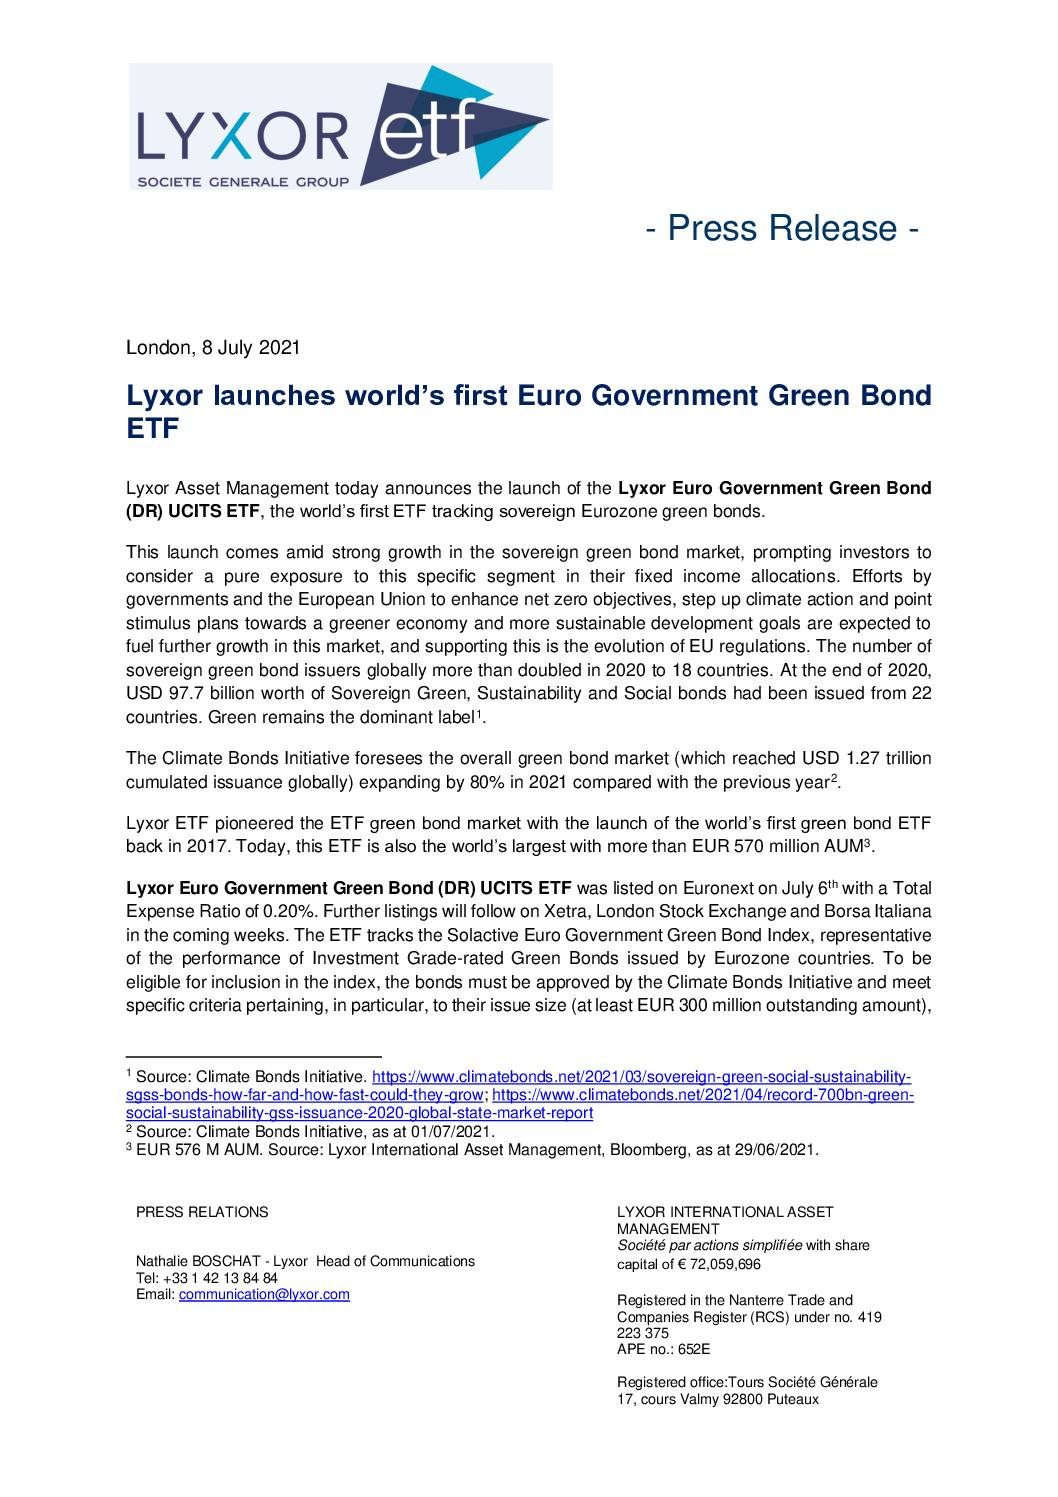 Lyxor Launches World's First Euro Government Green Bond ETF